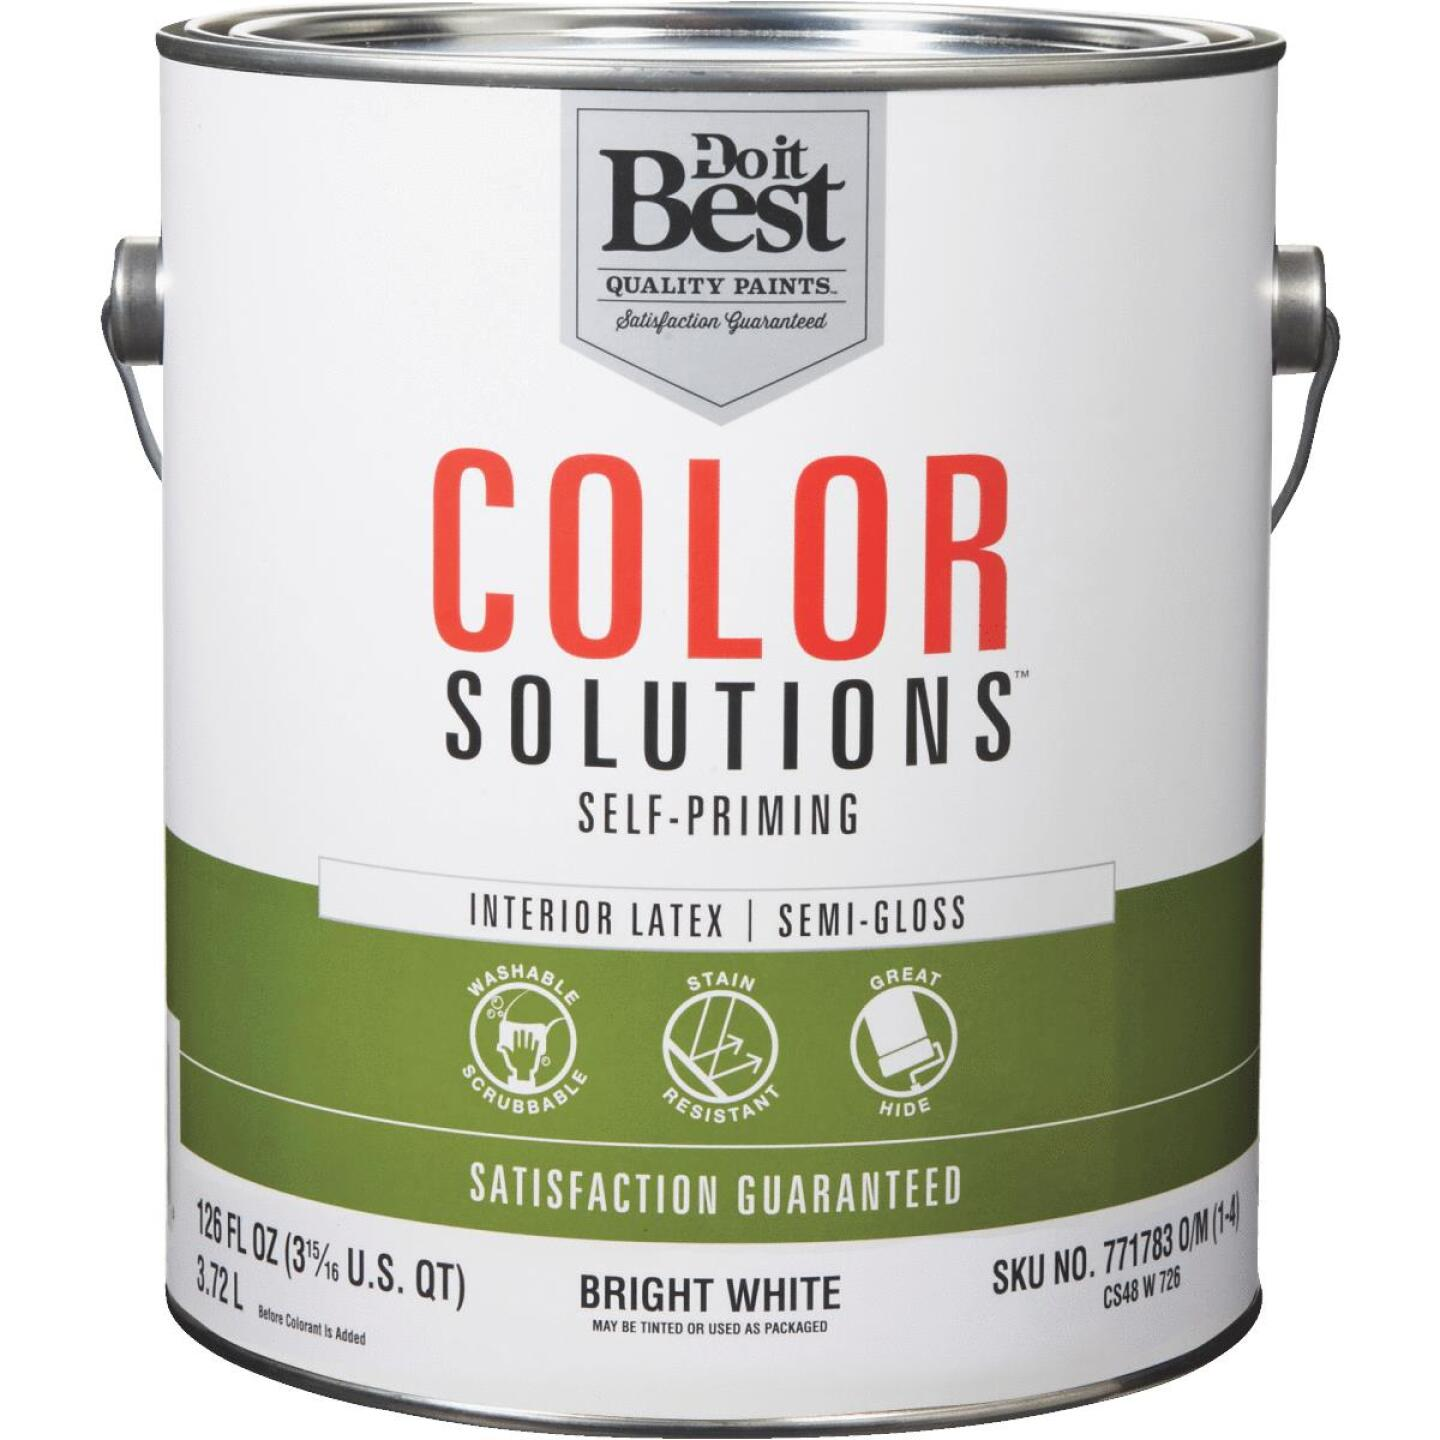 Do it Best Color Solutions Latex Self-Priming Semi-Gloss Interior Wall Paint, Bright White, 1 Gal. Image 1